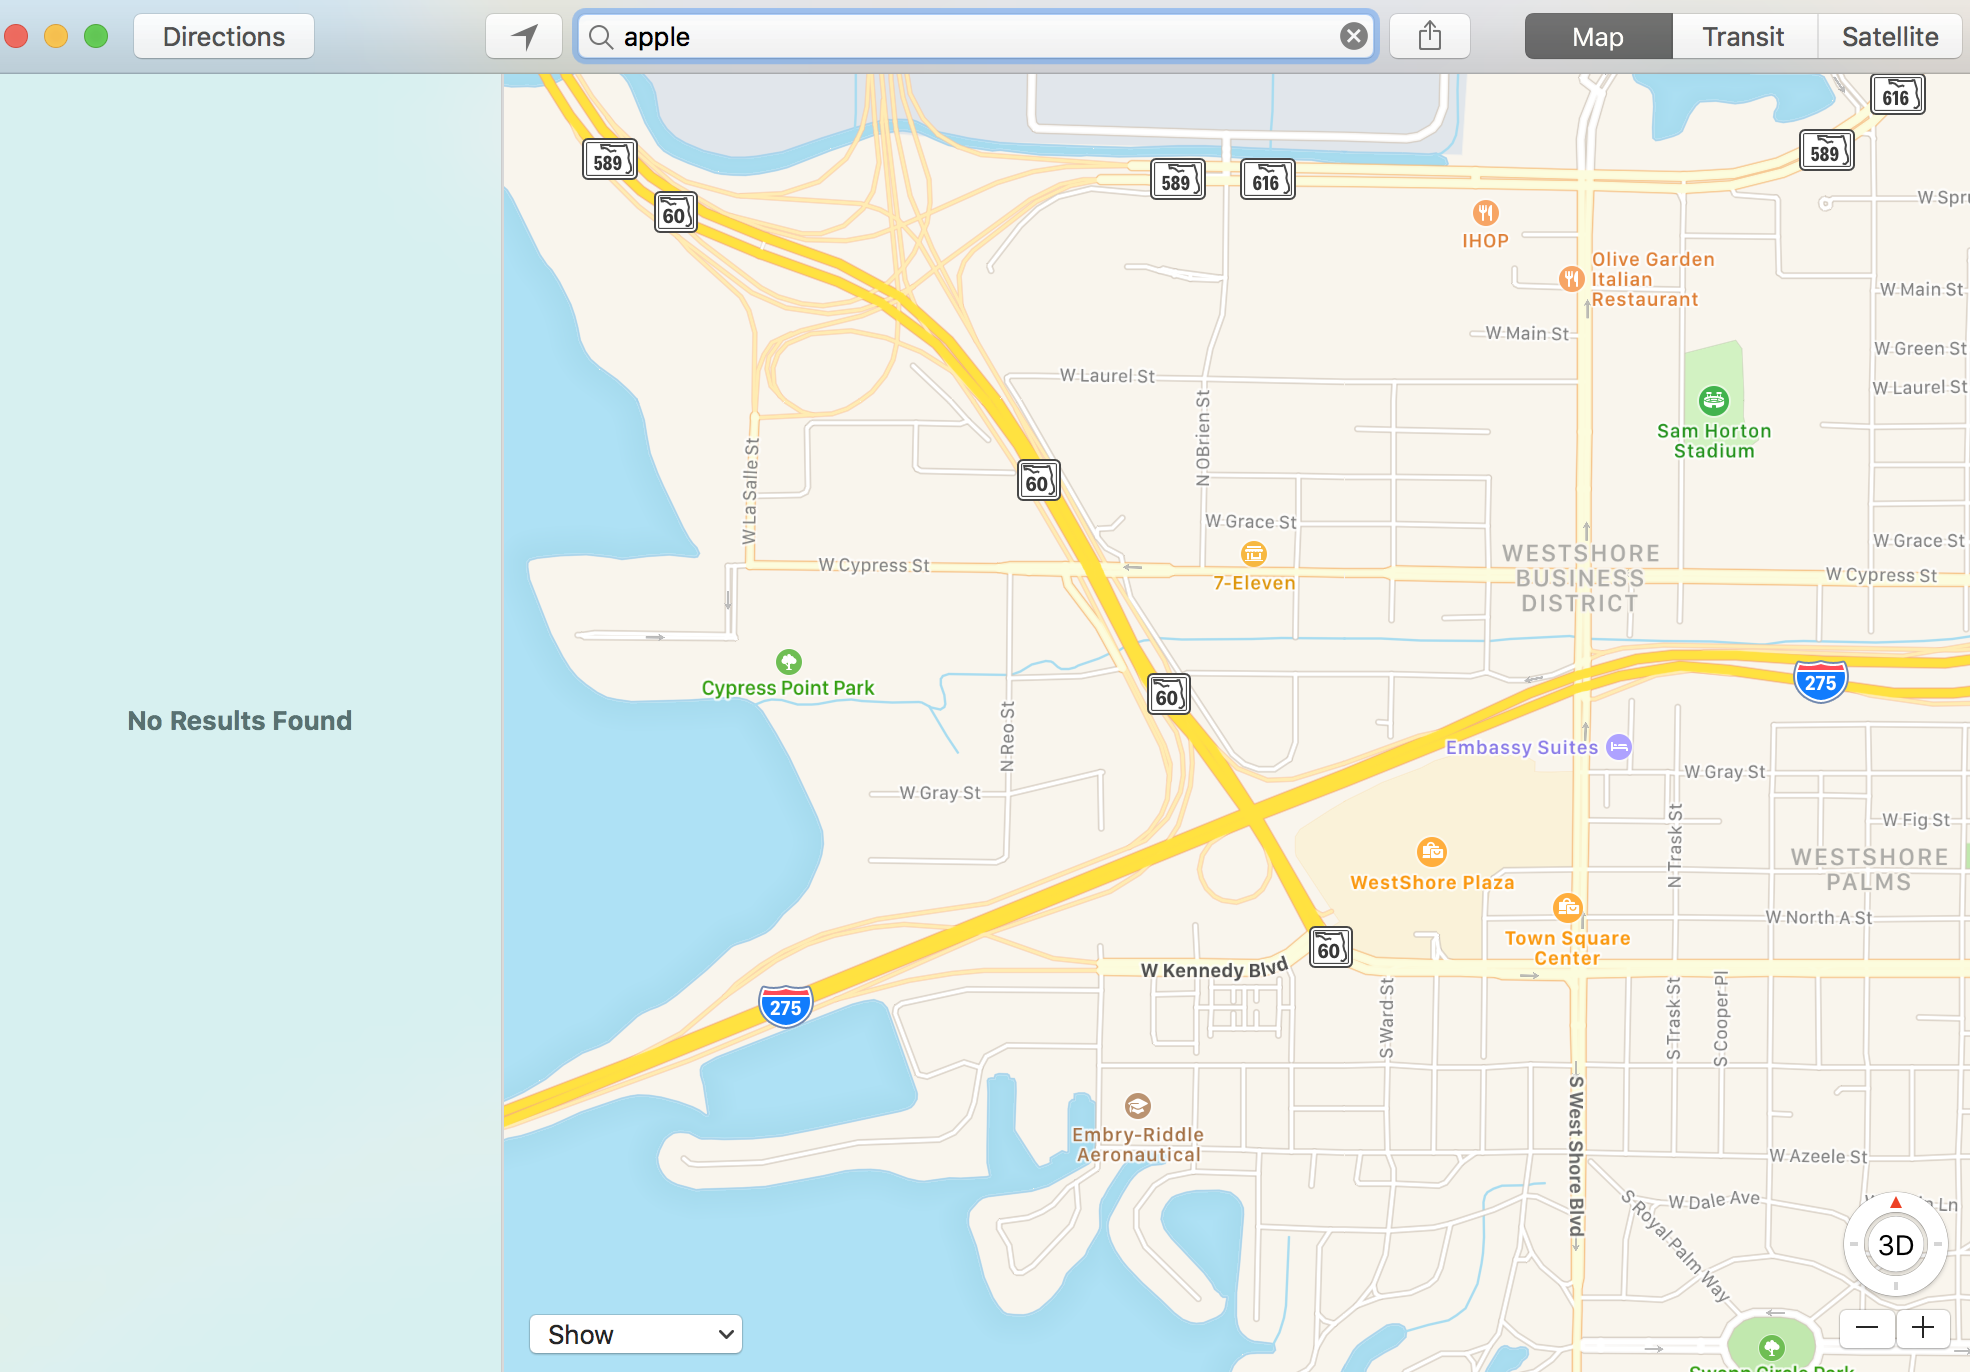 Apple Maps is down